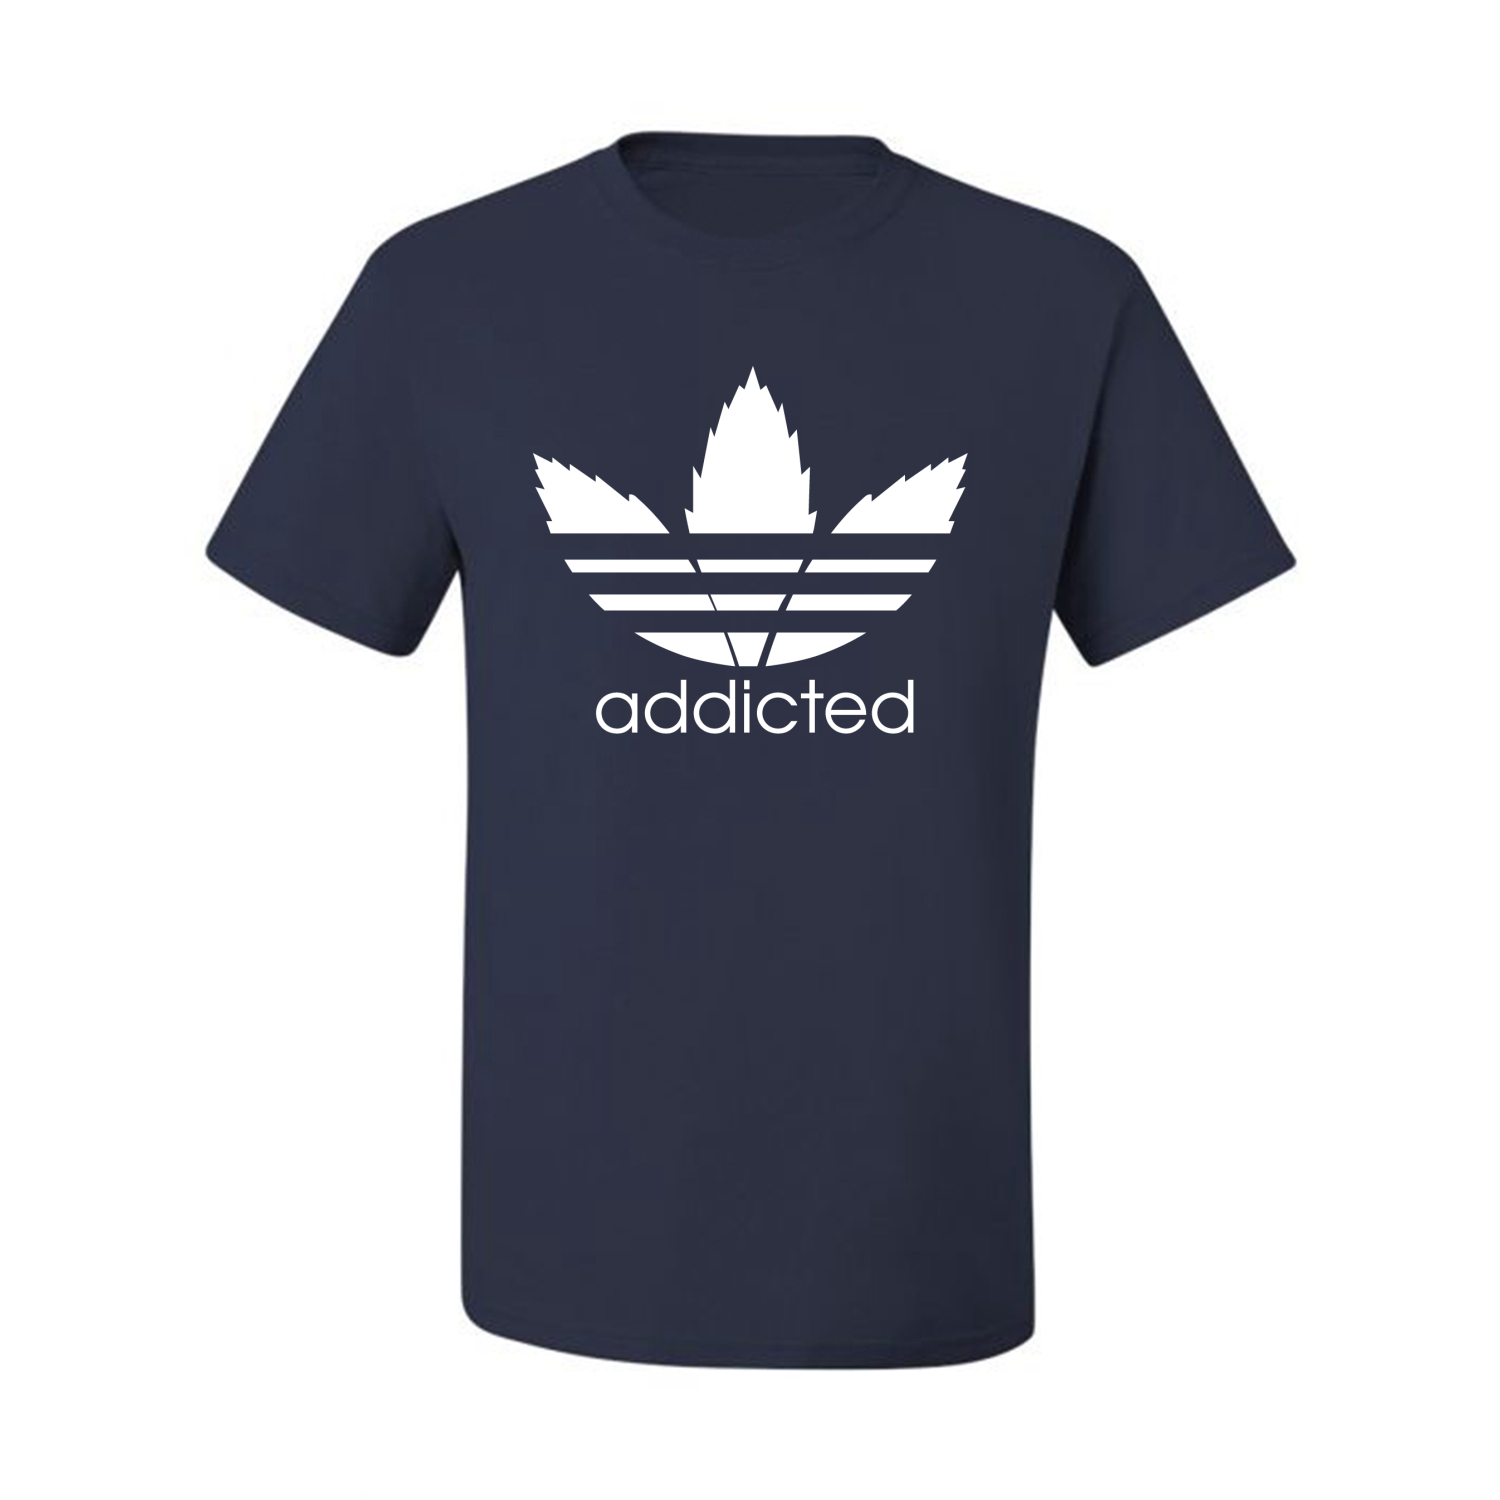 Addicted-White-Pot-Leaf-Mens-Weed-T-Shirt-Graphic-Parody-Tee thumbnail 28